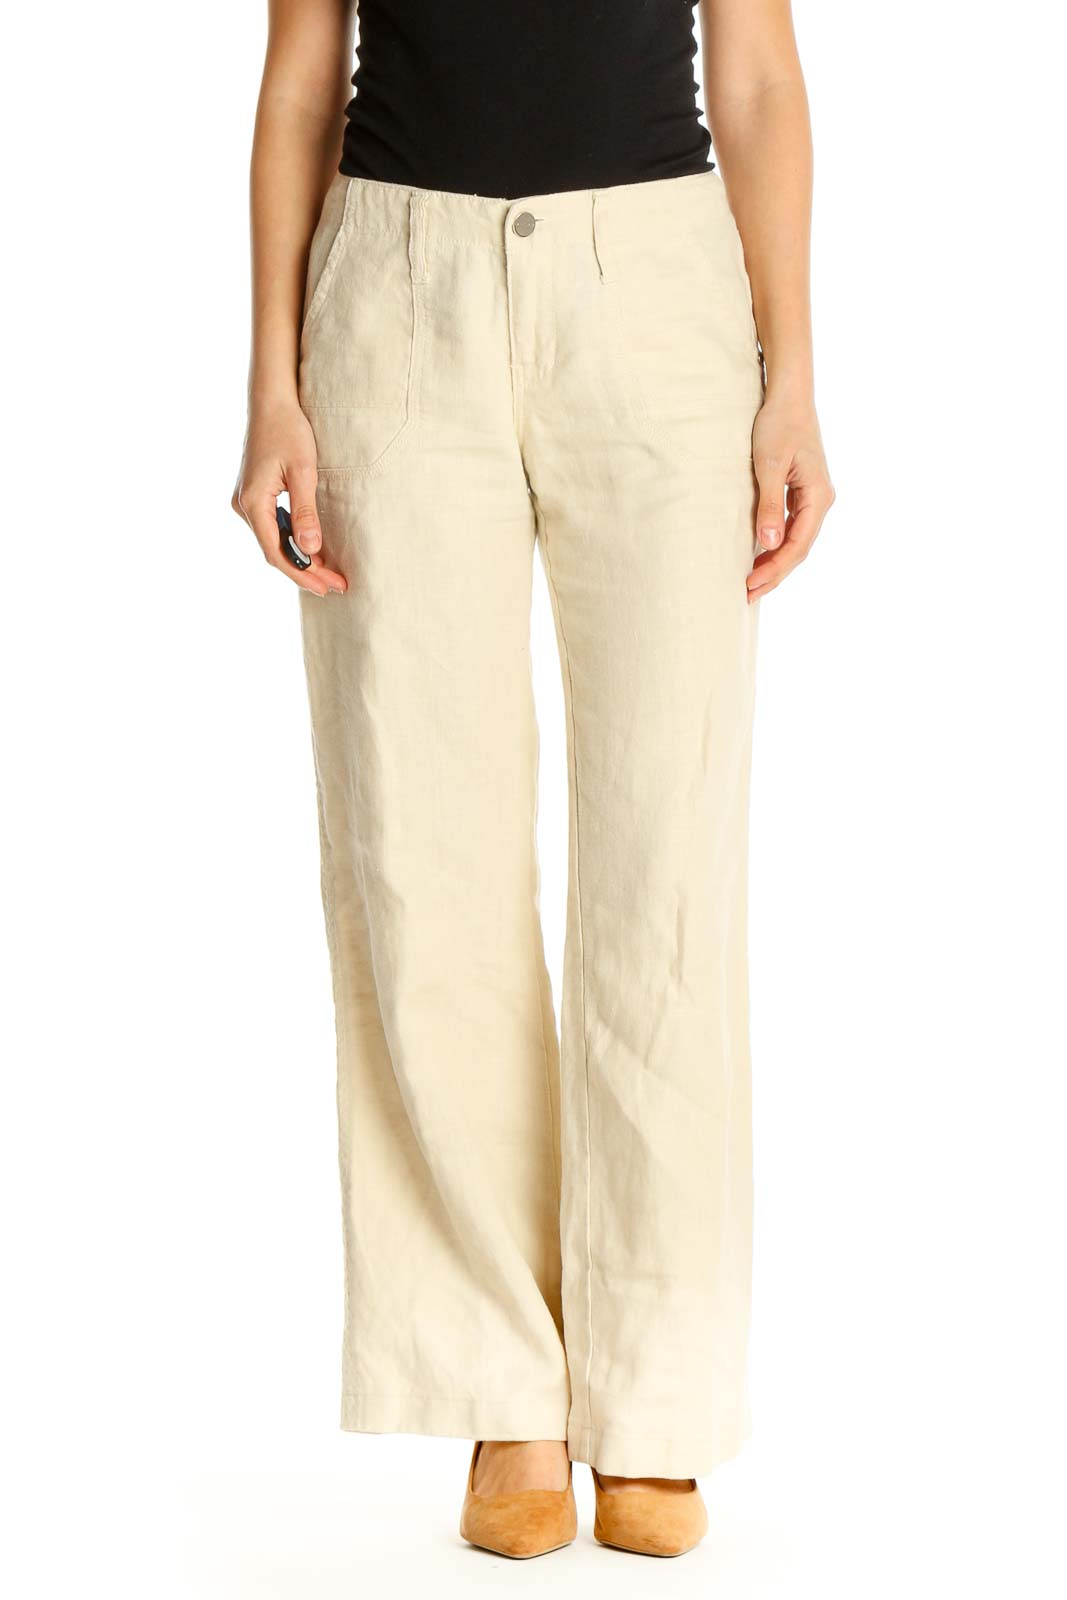 Beige Textured Casual Trousers Front